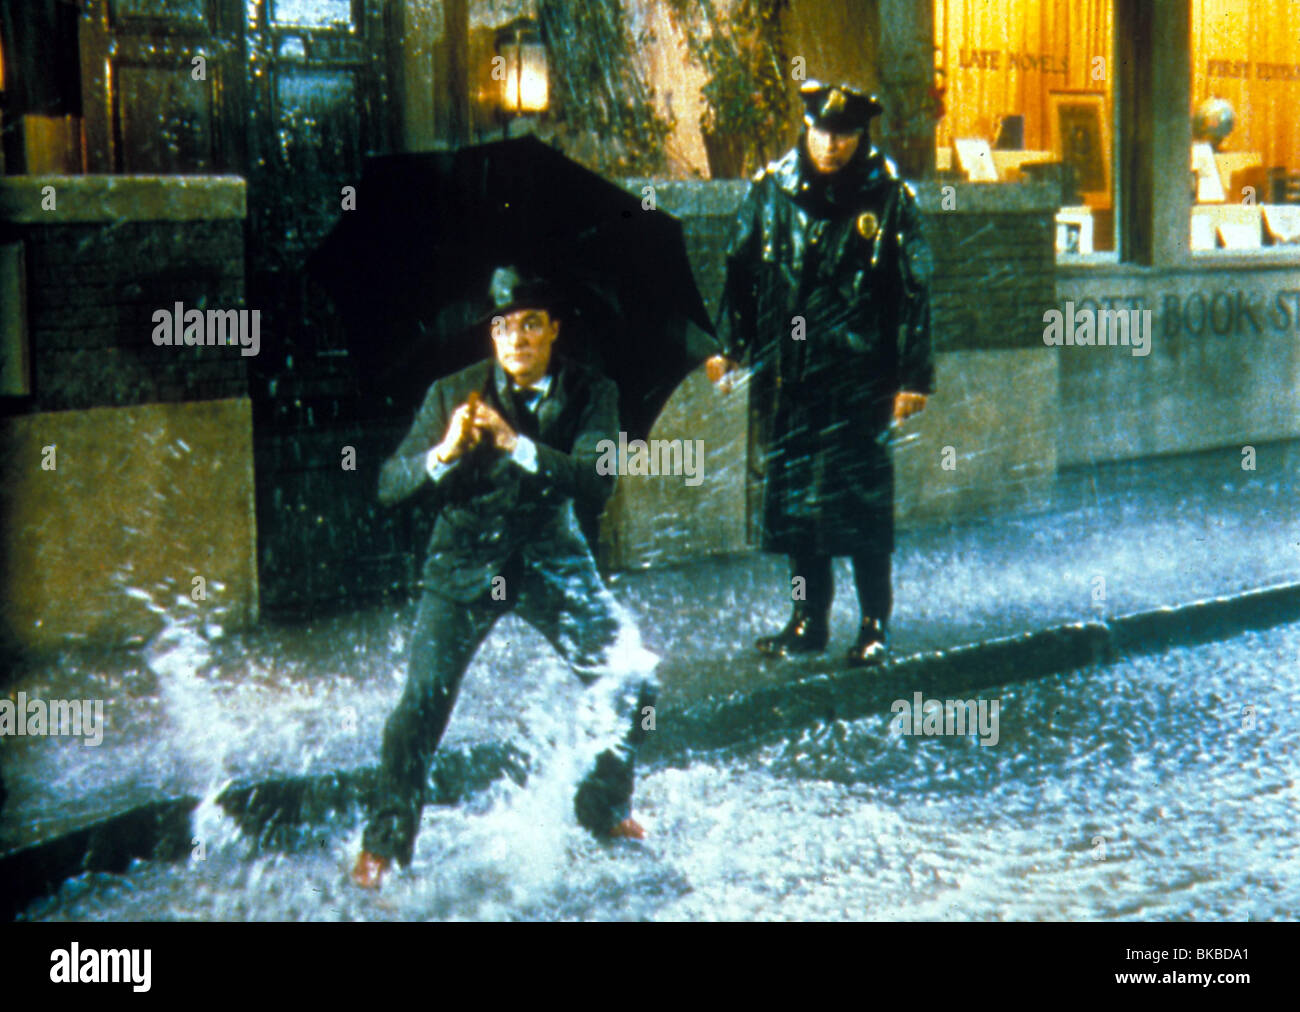 SINGIN IN THE RAIN 1952 SINGING IN THE RAIN ALT GENE